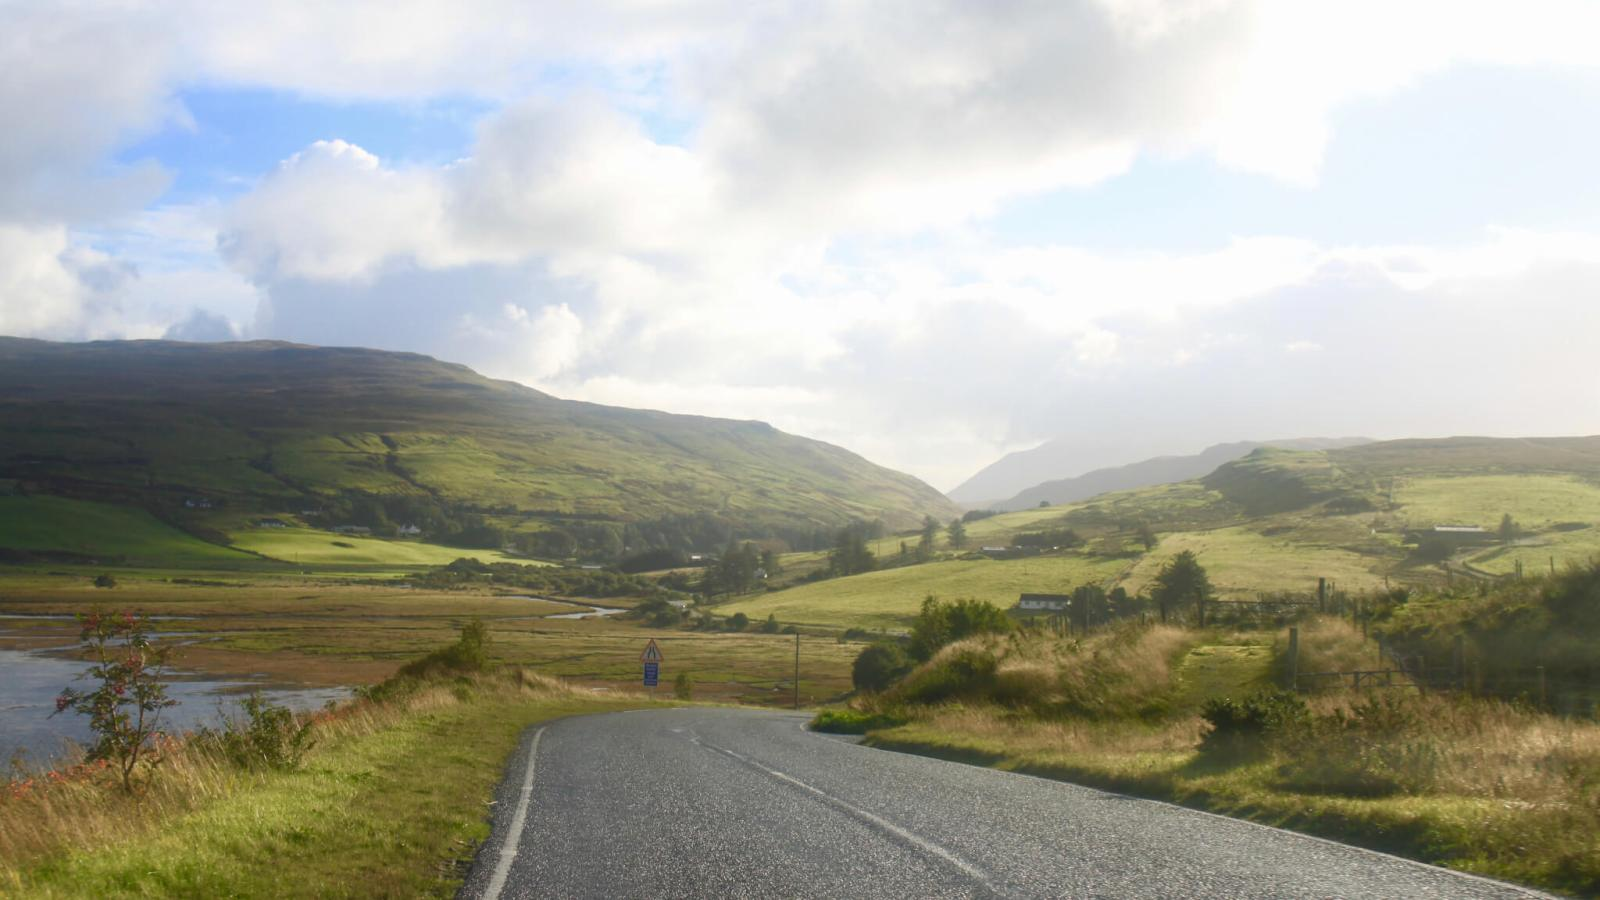 Road winding through the green and golden hills on an Isle of Skye driving itinerary.